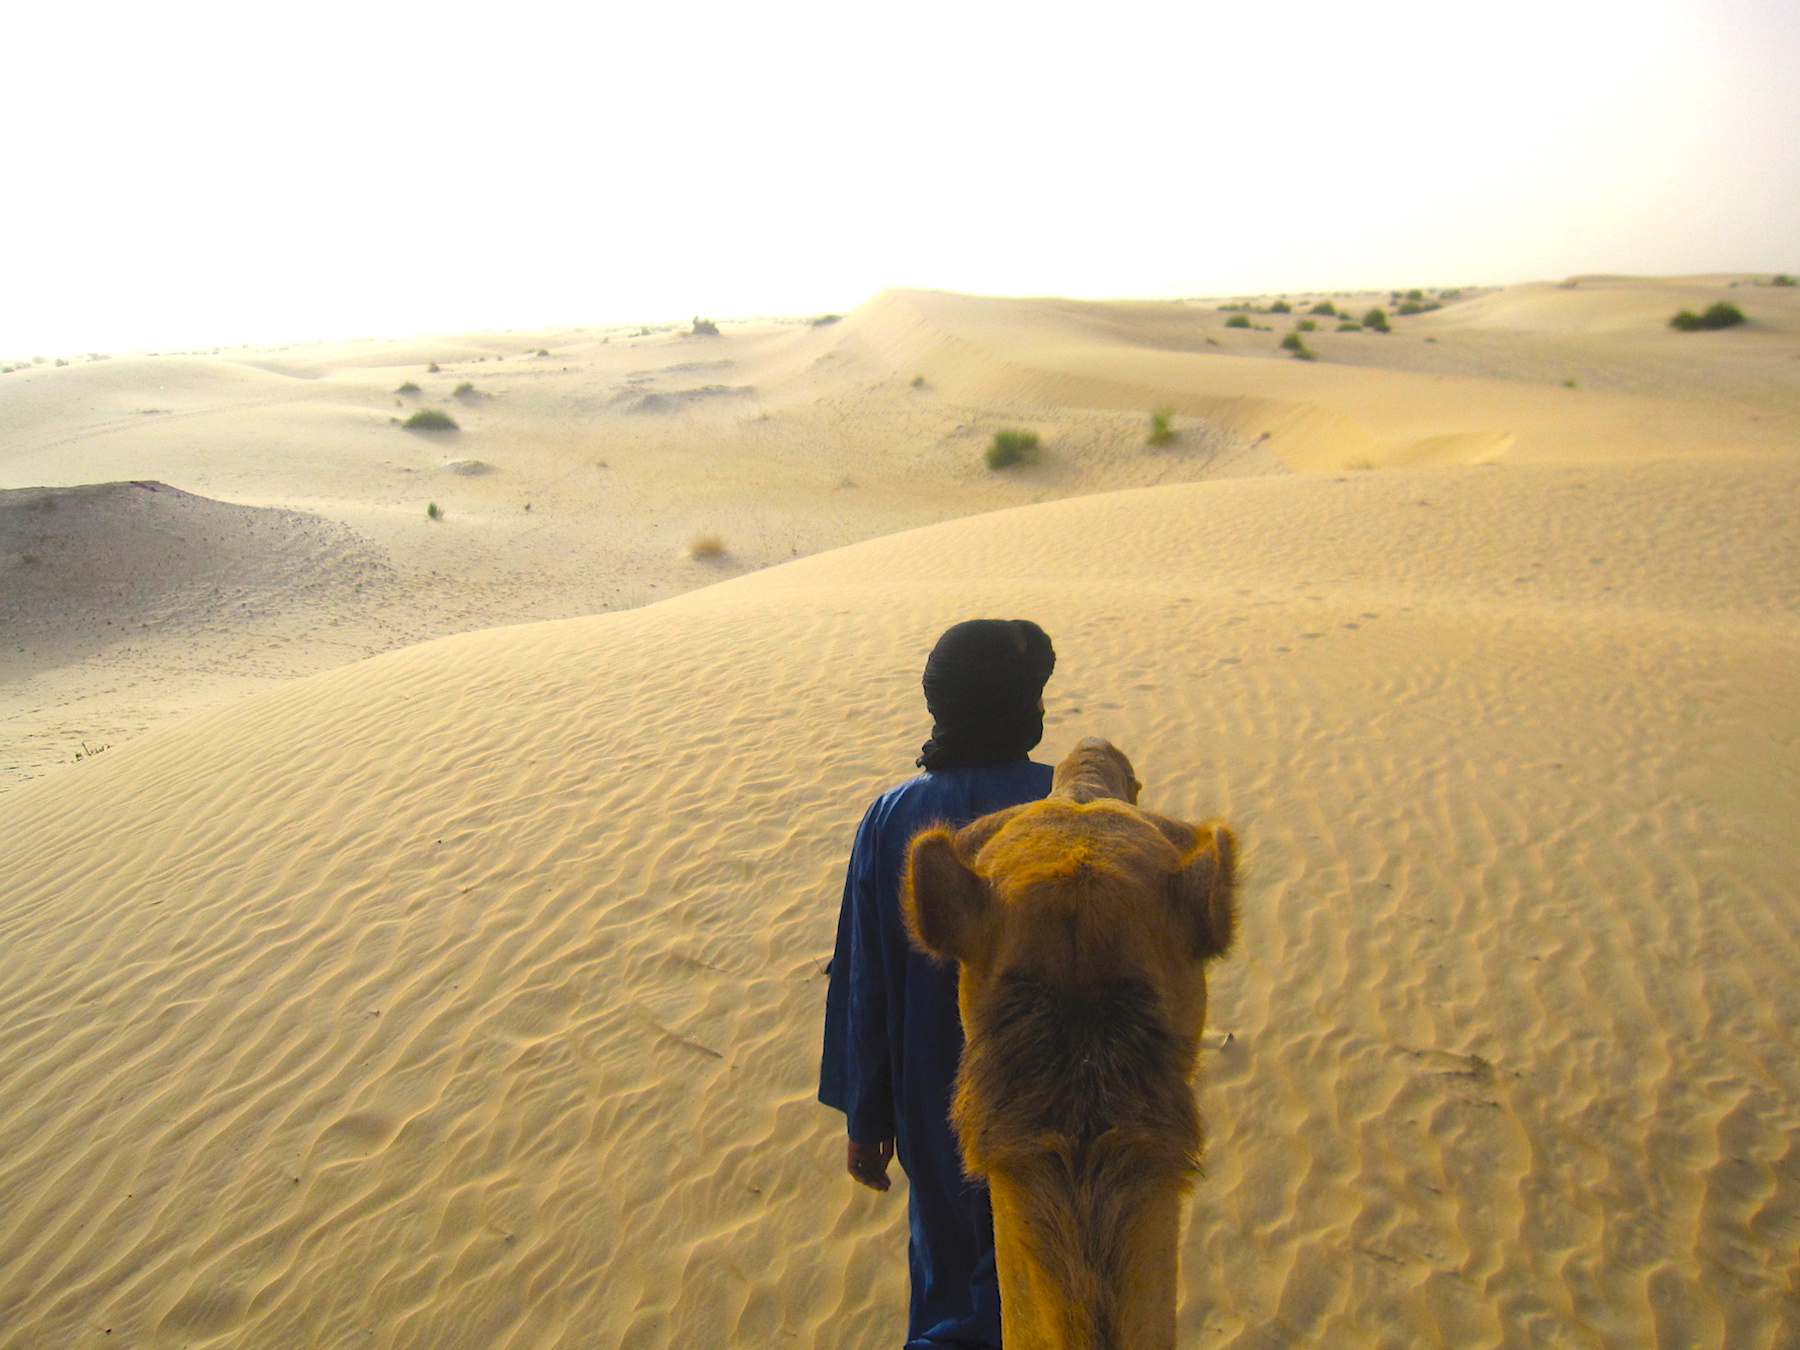 My Tuareg guide and I, heading to the camp site in the Sahara. Photo: Patti Neves